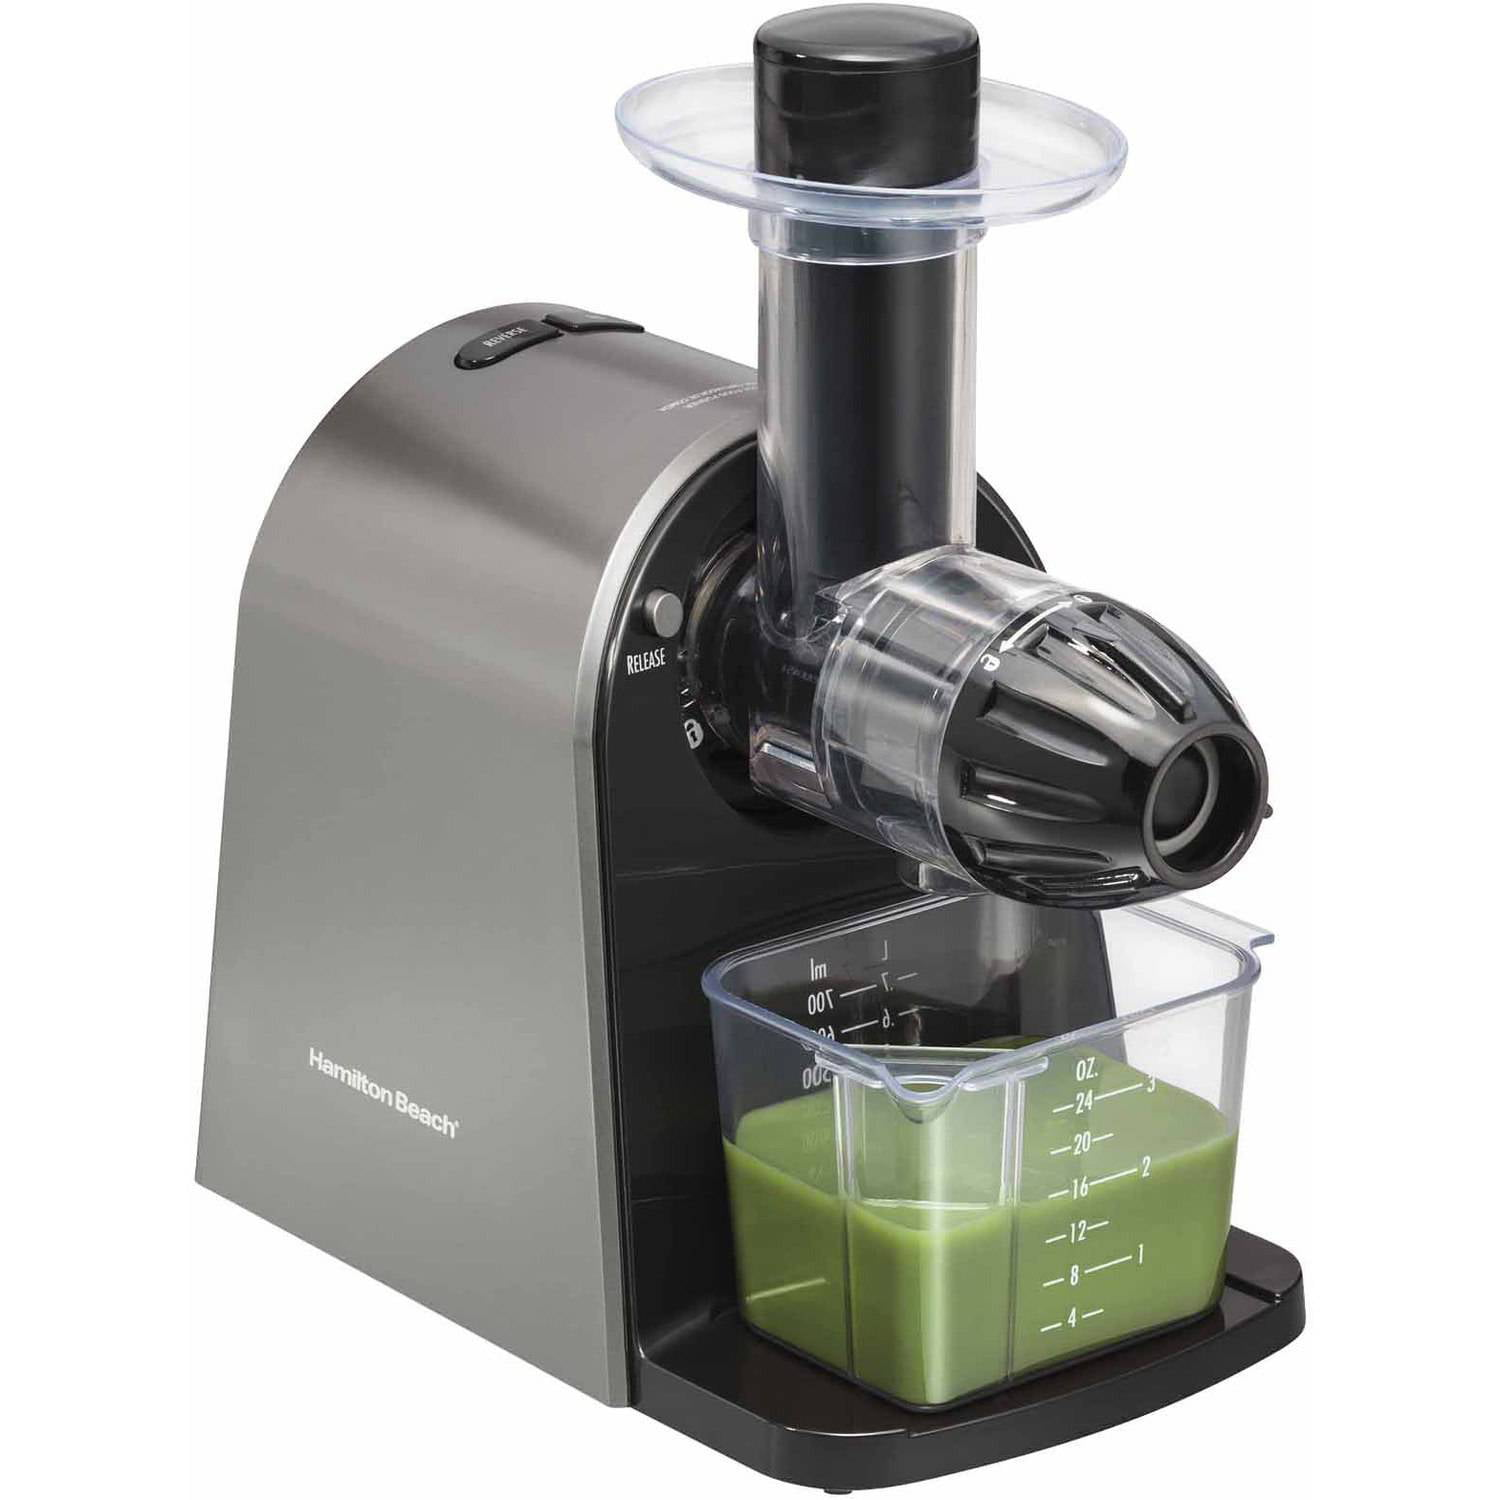 Slow Manual Juicer Ps 326 : Cold Press Juicer Machine - Masticating Juicer Slow Juice Extractor Maker Electric Juicing ...